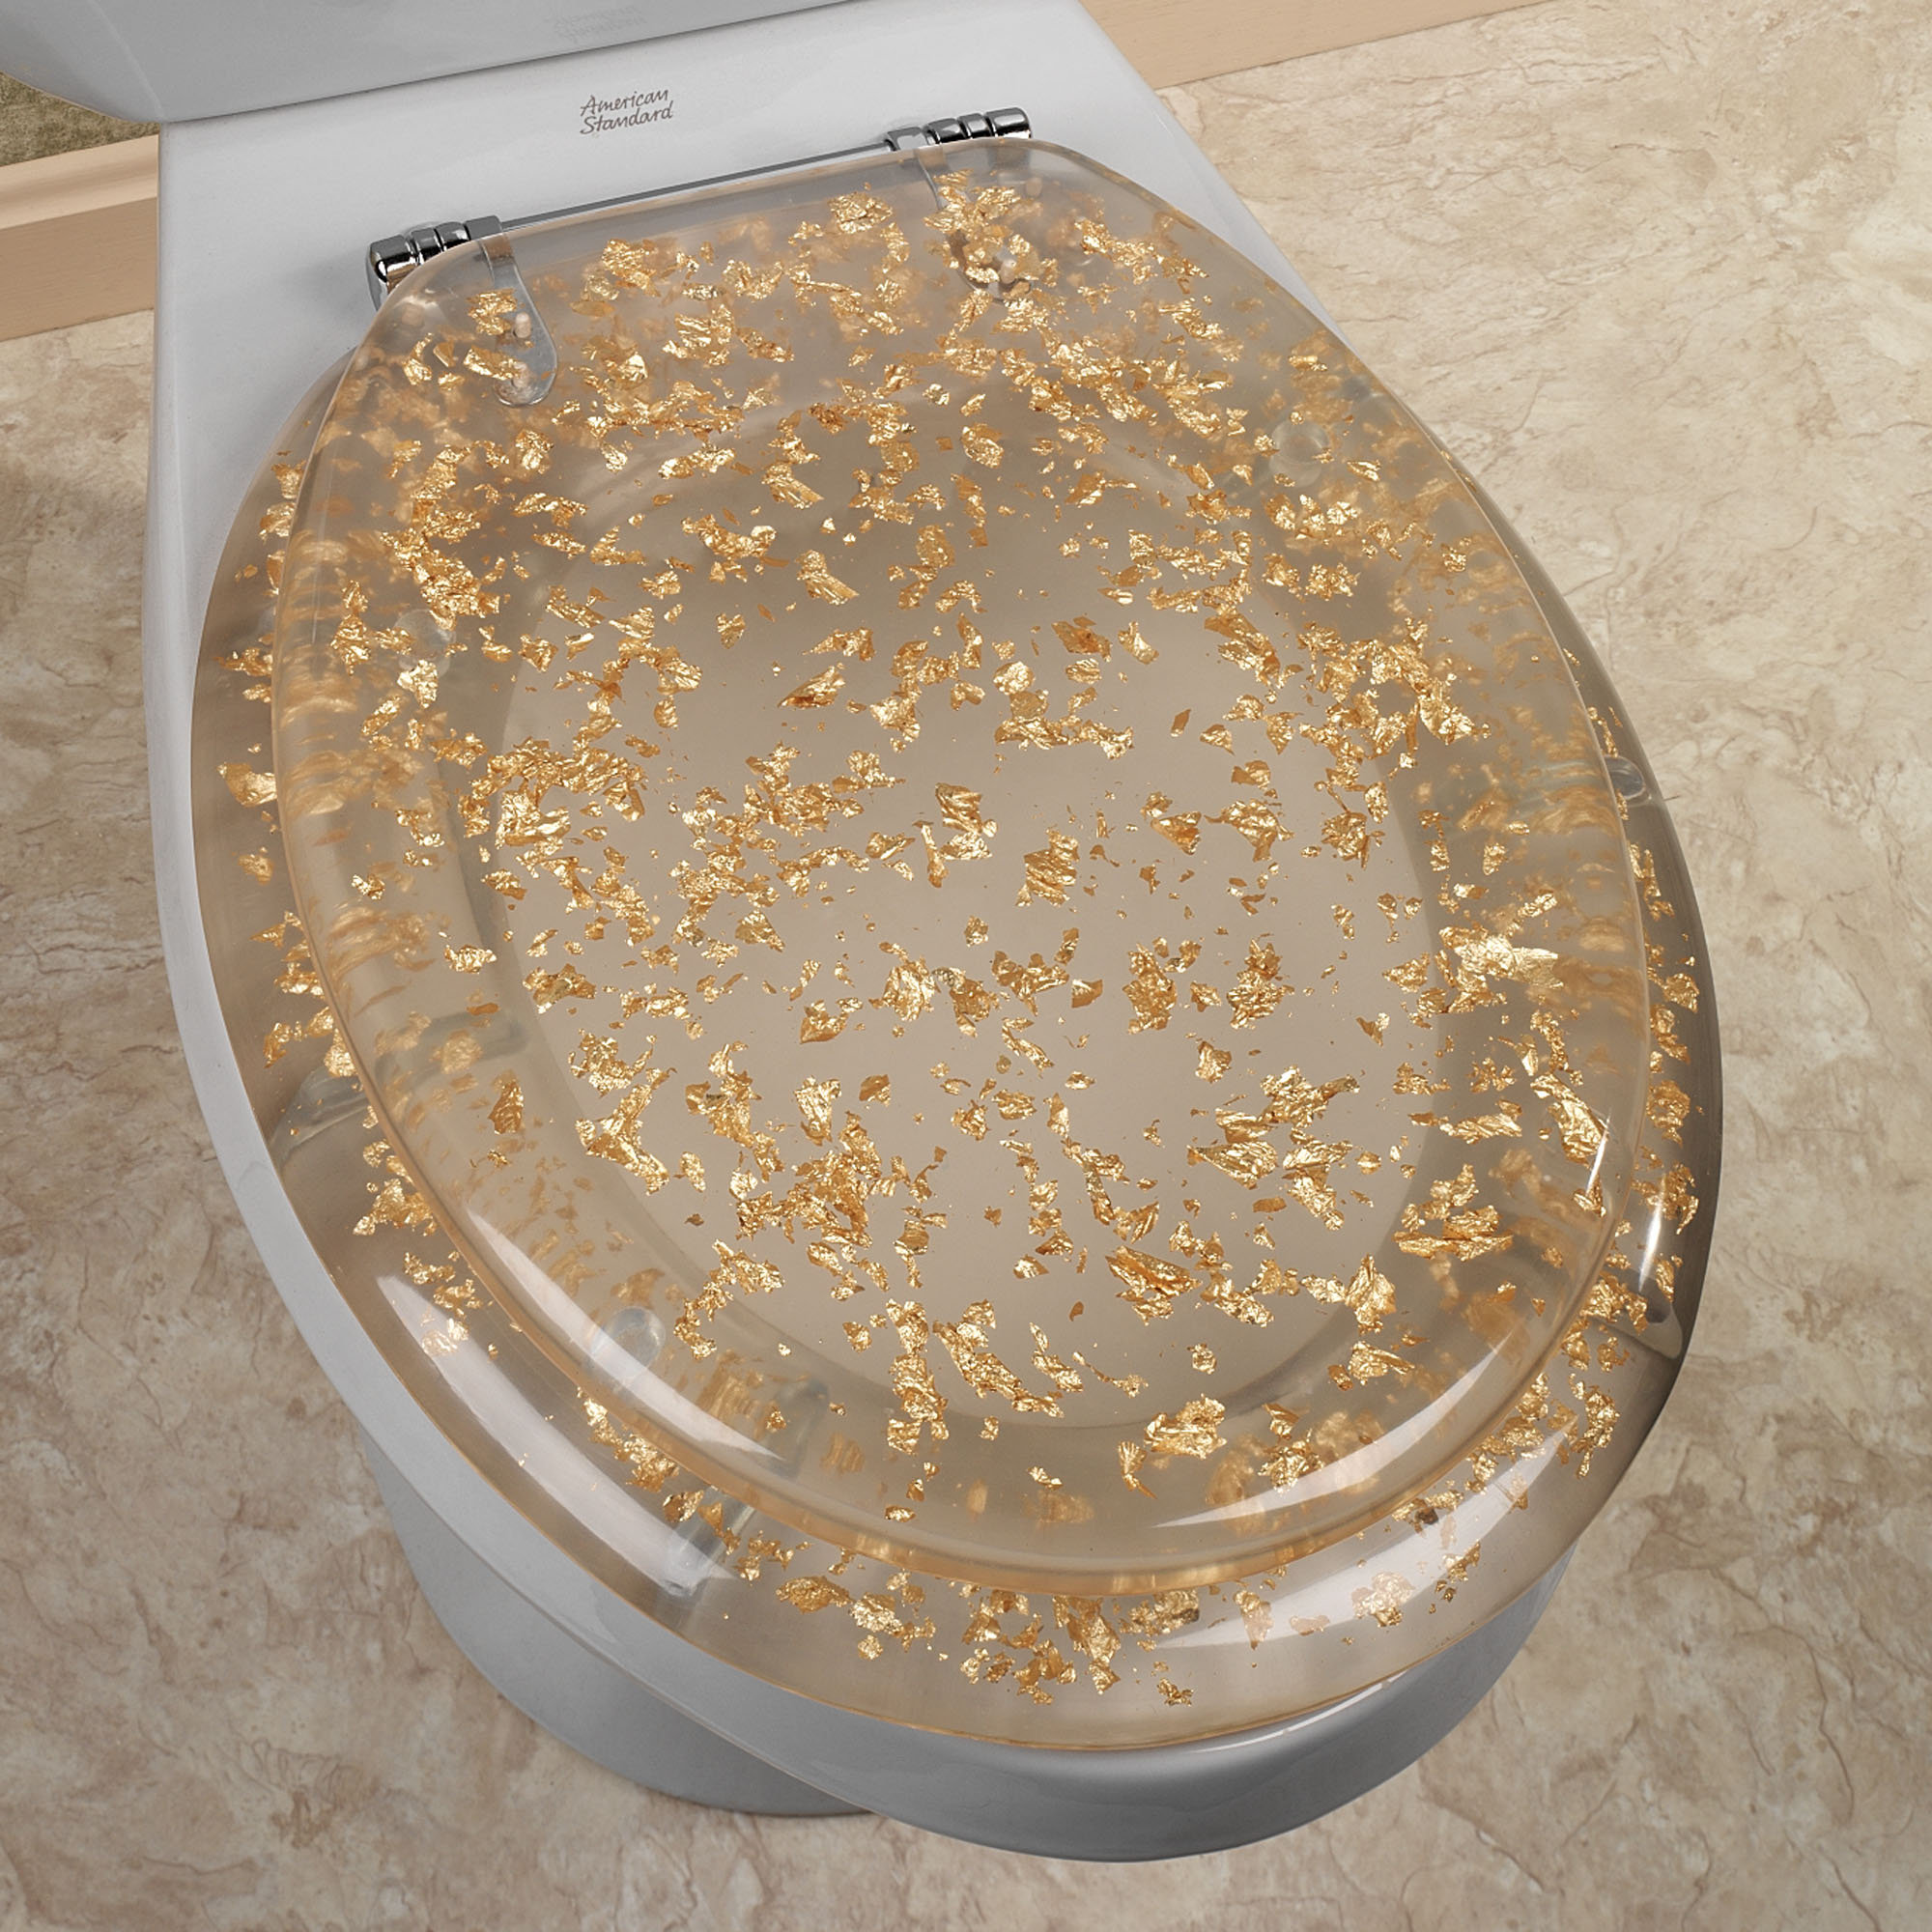 gold toilet seat cover. Elongated Toilet Seat Covers Designed For Your Comfort  elongated toilet seat decorative